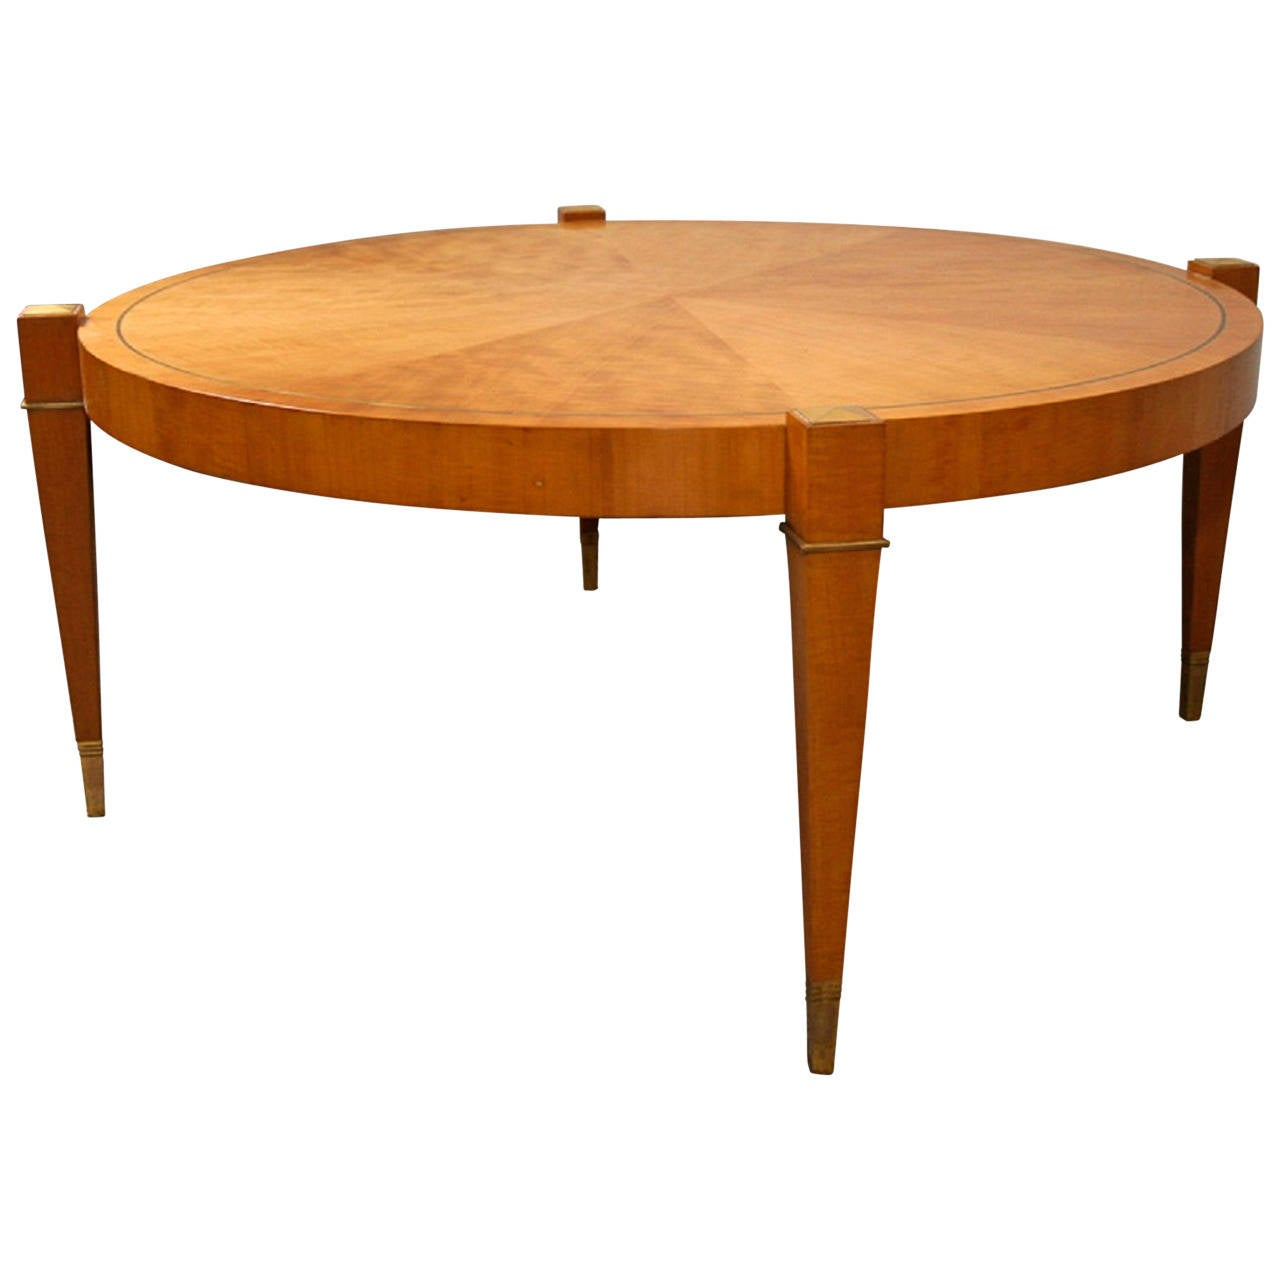 Custom made low coffee table by albano american 1950s at 1stdibs Handcrafted coffee table